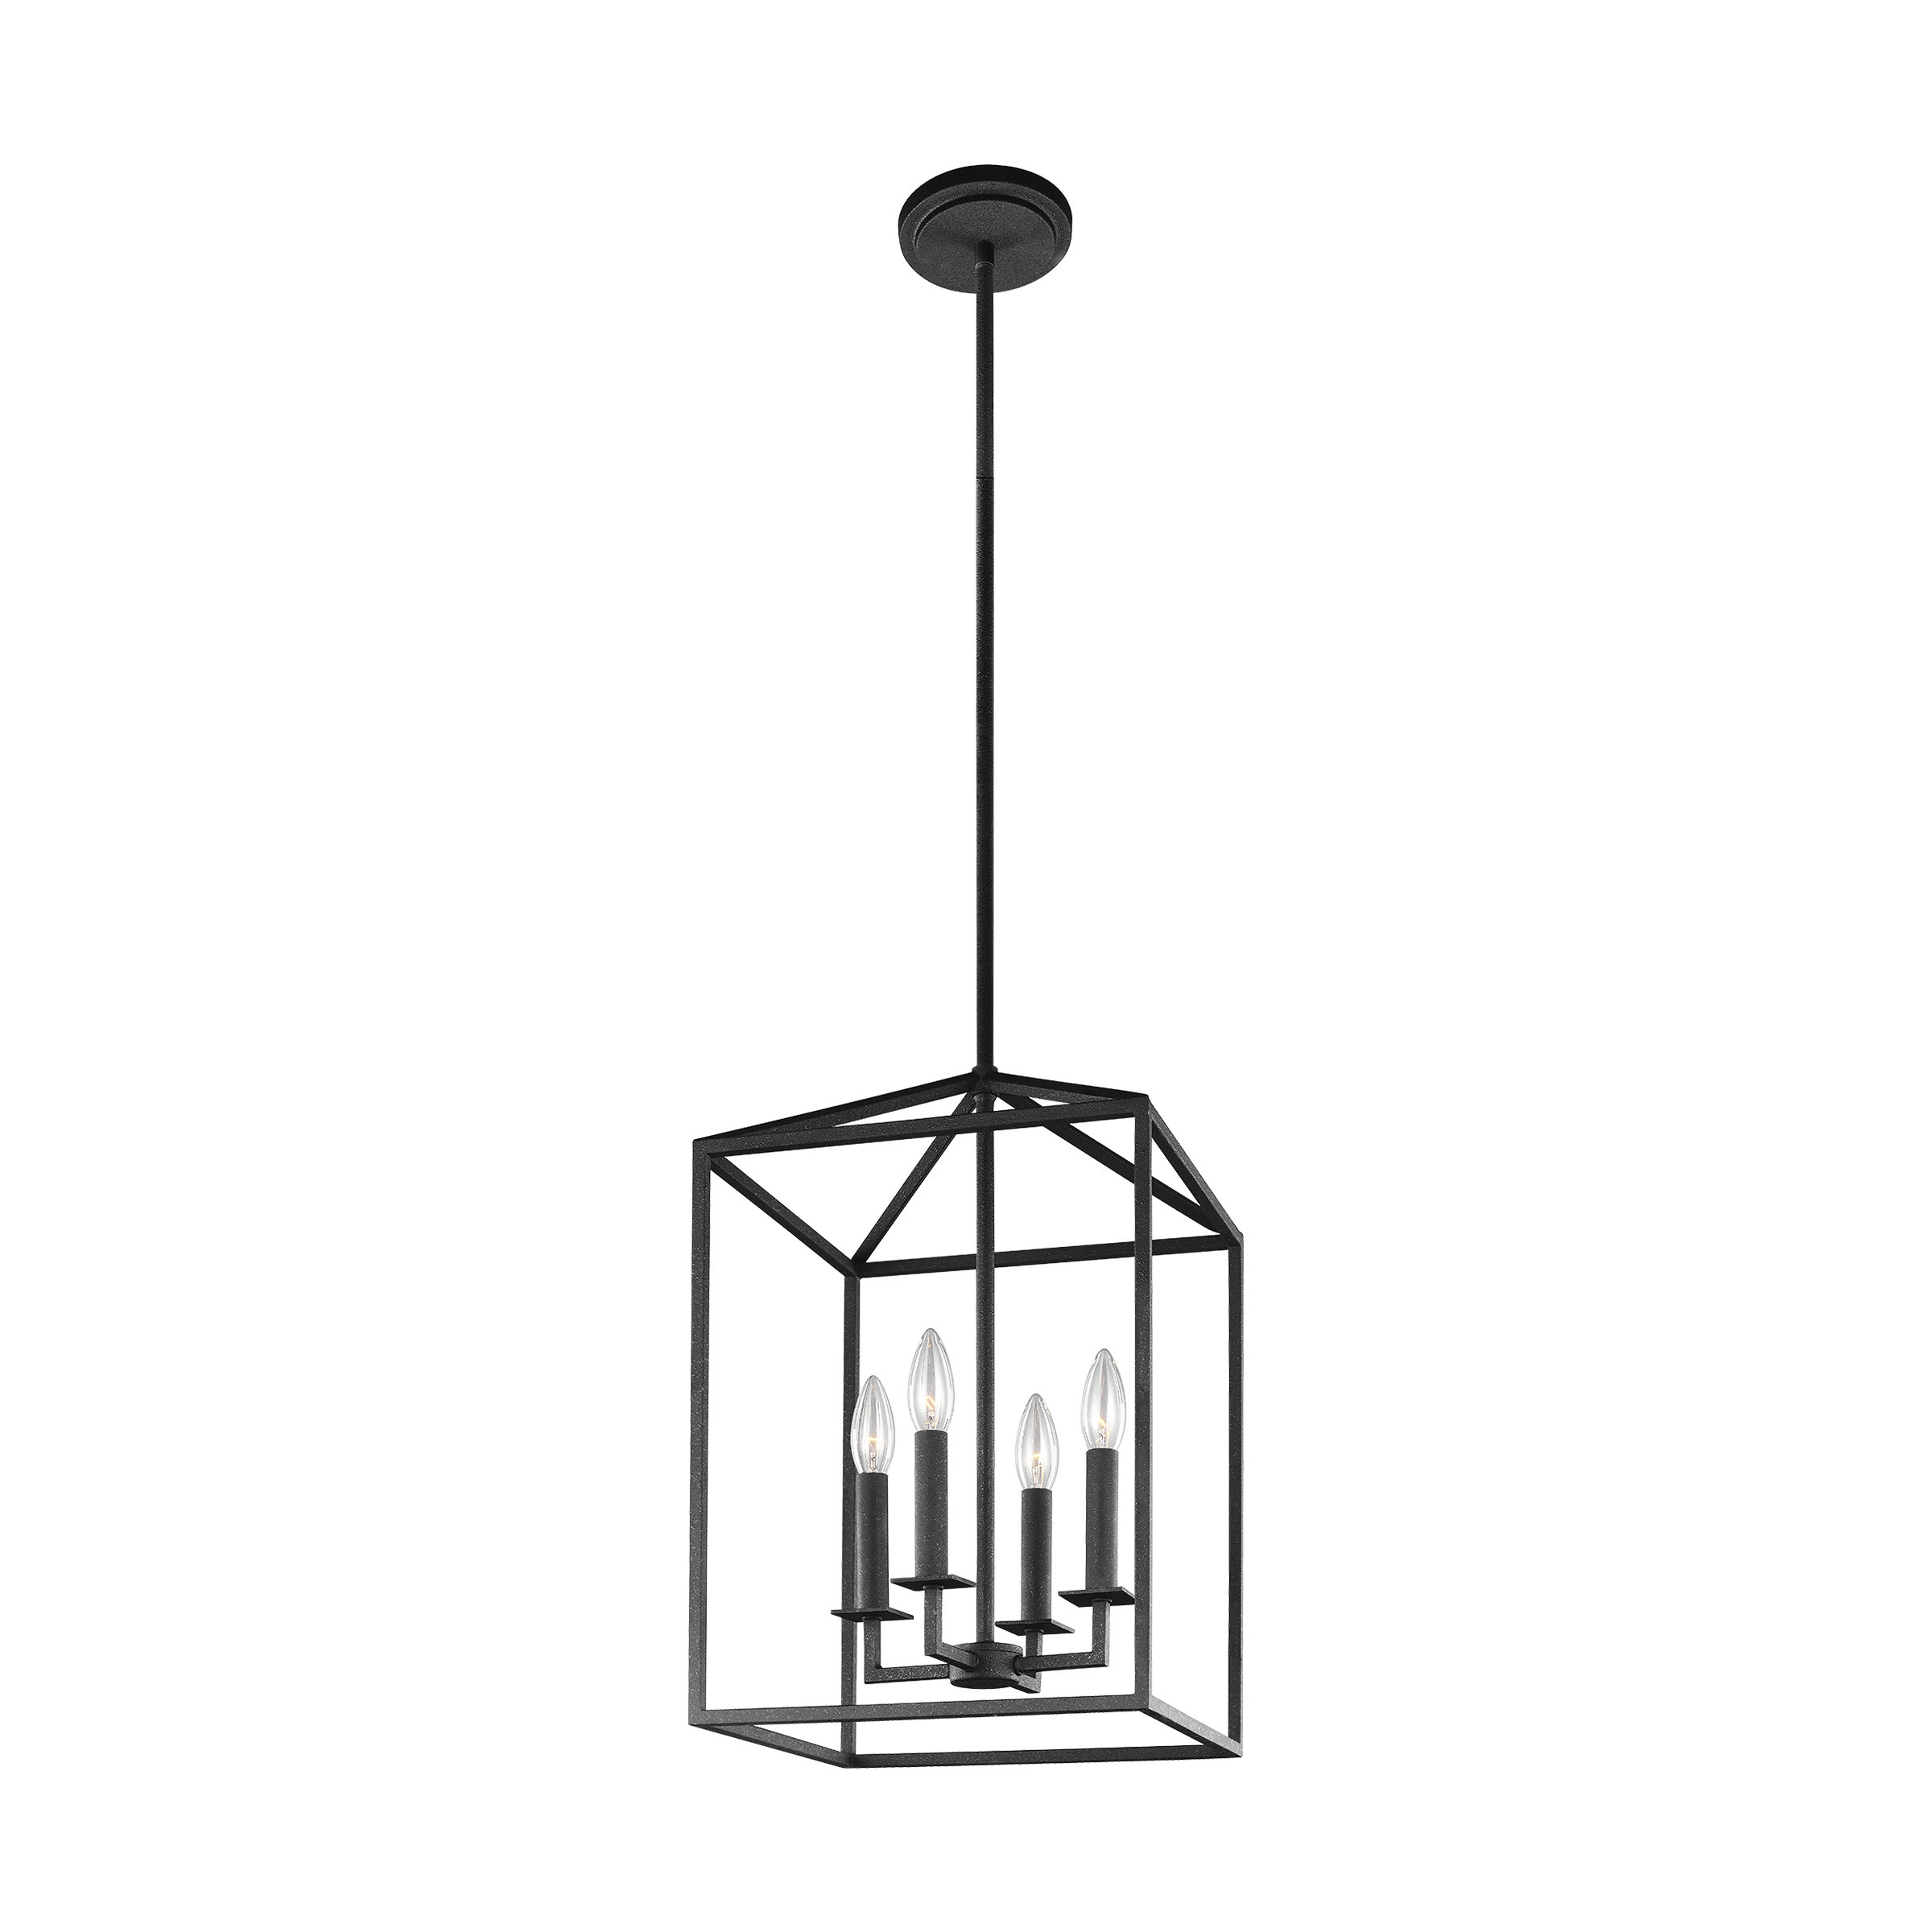 Odie 8 Light Kitchen Island Square / Rectangle Pendants With Regard To Most Up To Date Odie 4 Light Lantern Square / Rectangle Pendant (Gallery 9 of 20)